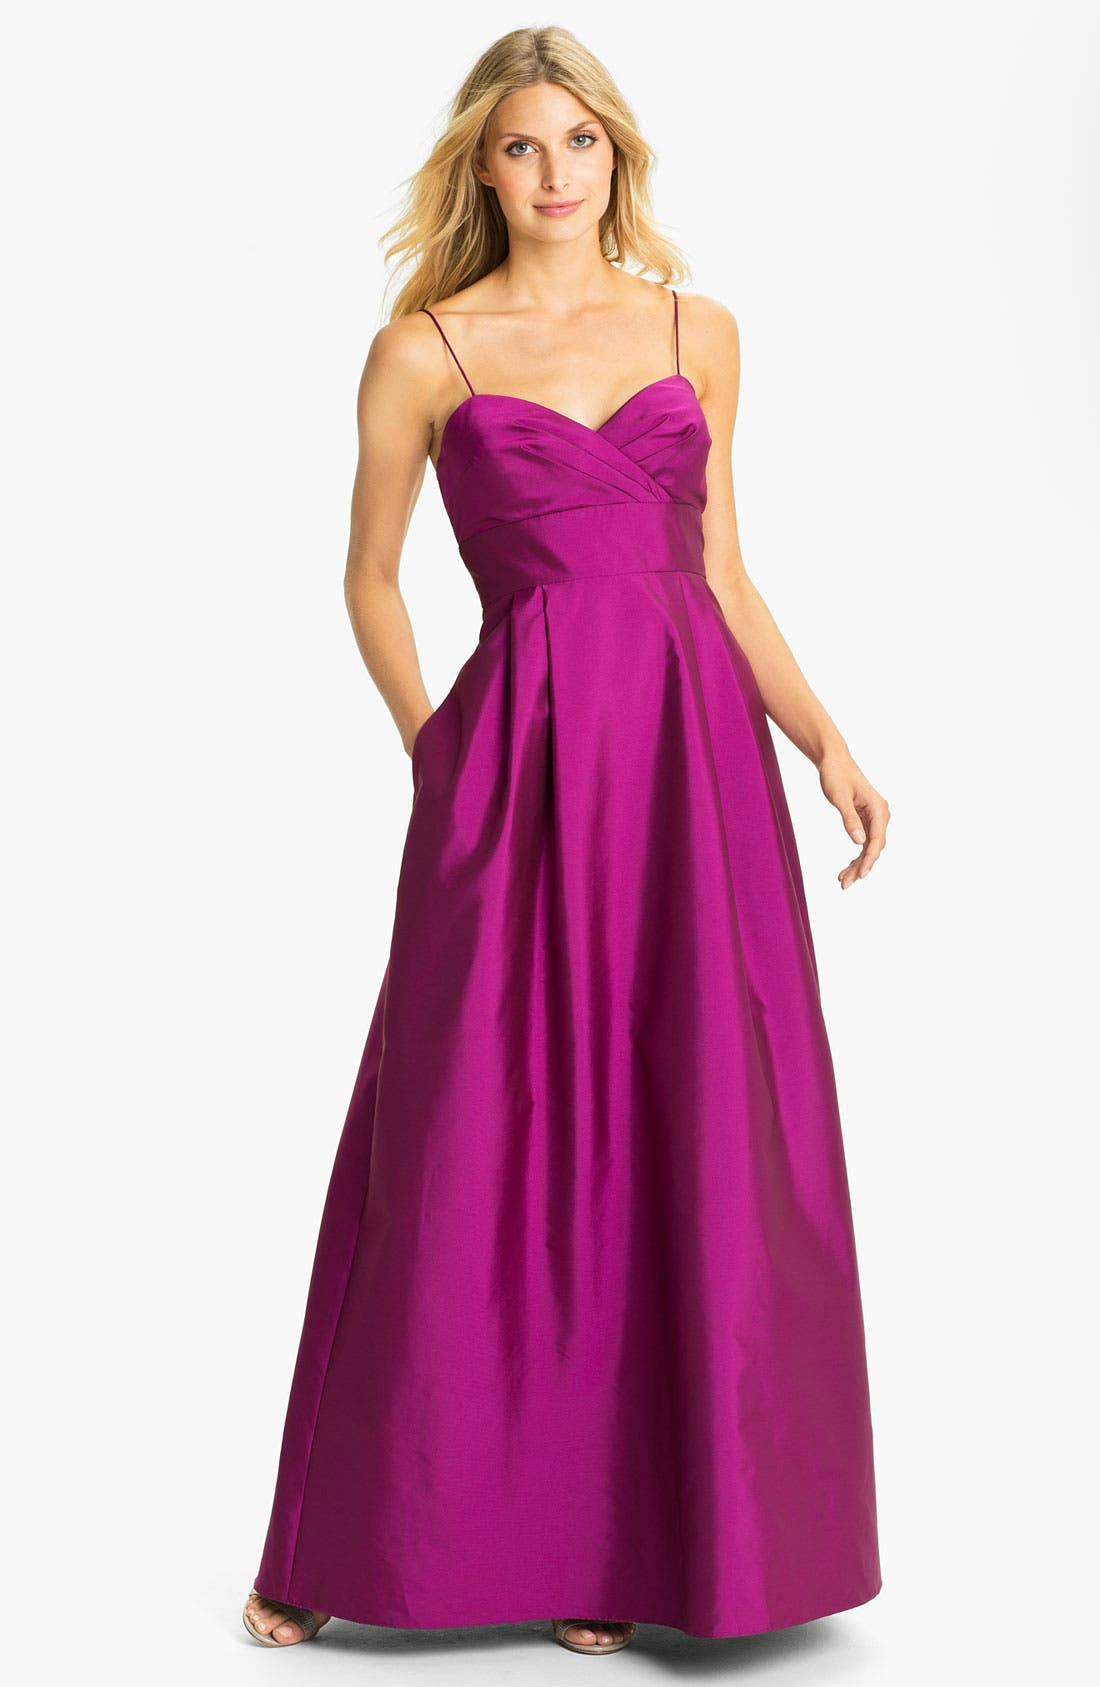 Alternate Image 1 Selected - Eliza J Spaghetti Strap Faille A-Line Gown